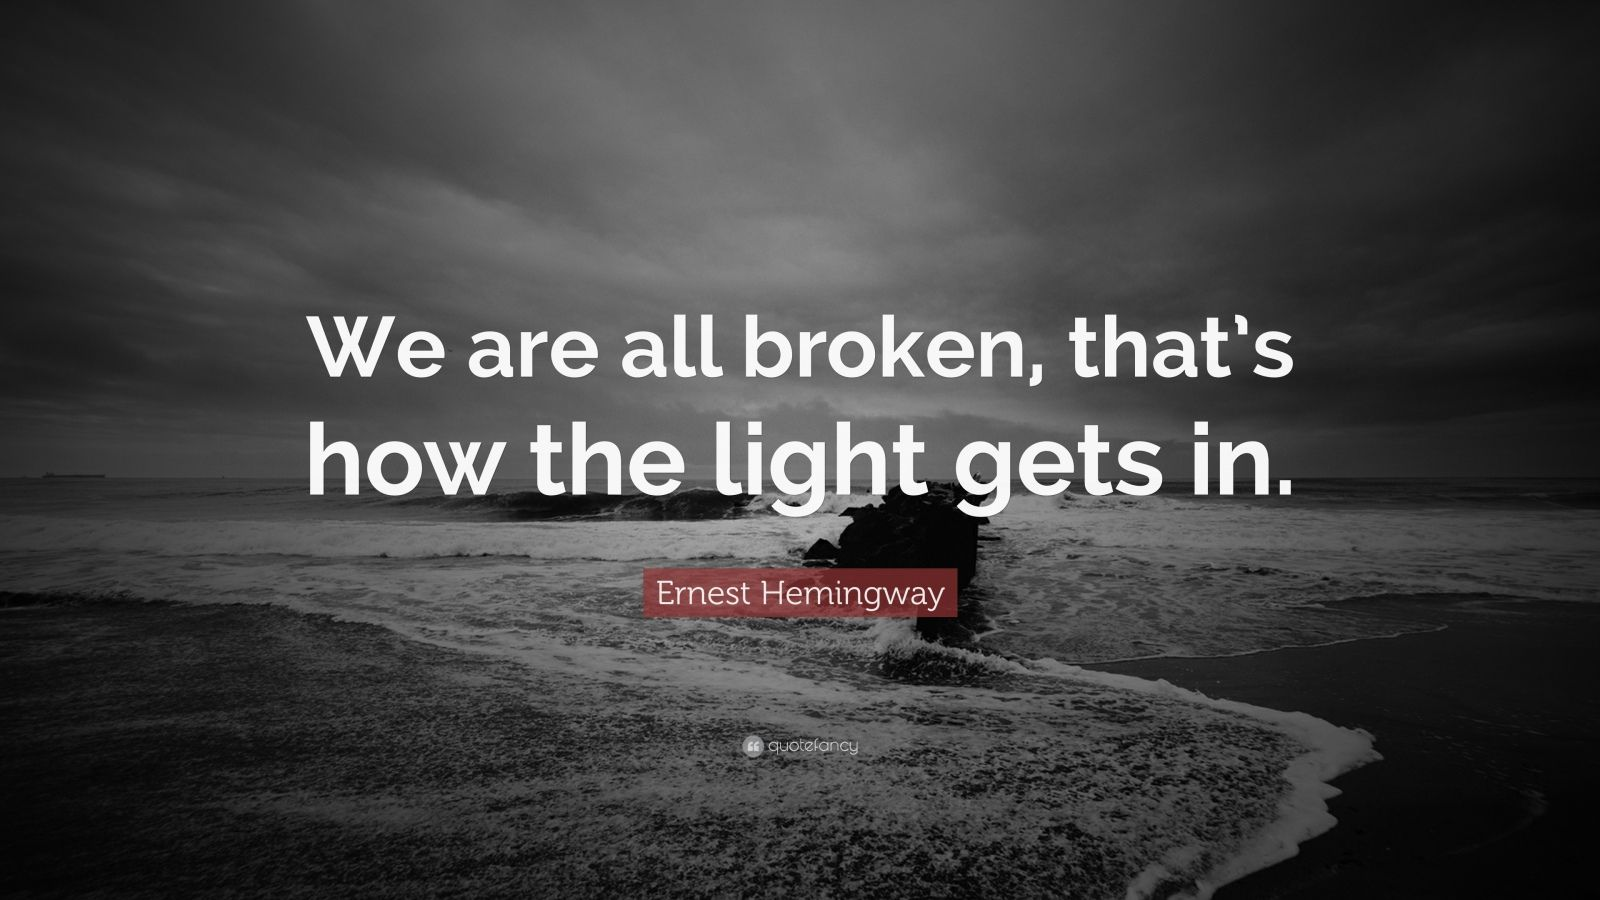 Inspiring Relationship Quotes Wallpaper Ernest Hemingway Quote We Are All Broken That S How The